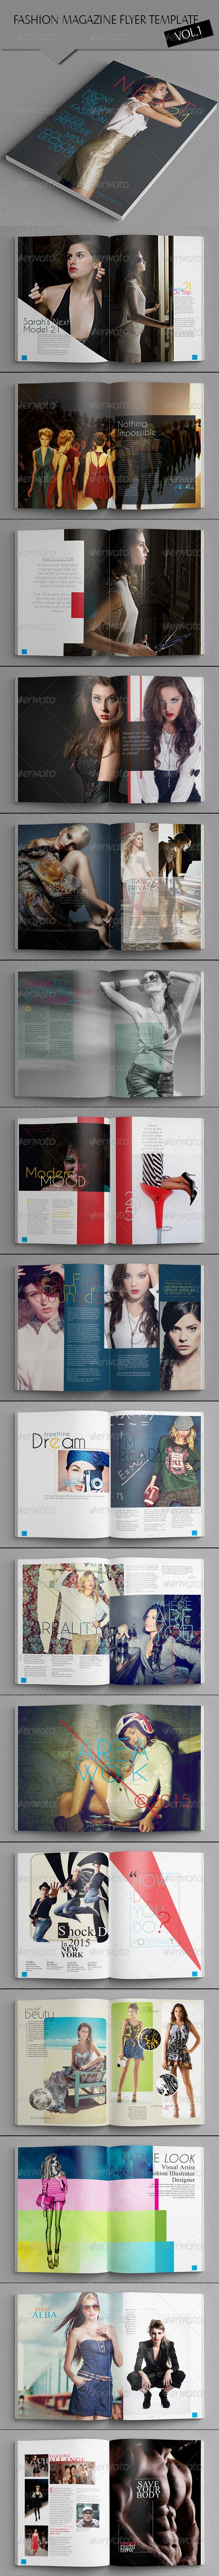 Indesign Fashion Magazine Template #fashion #magazine